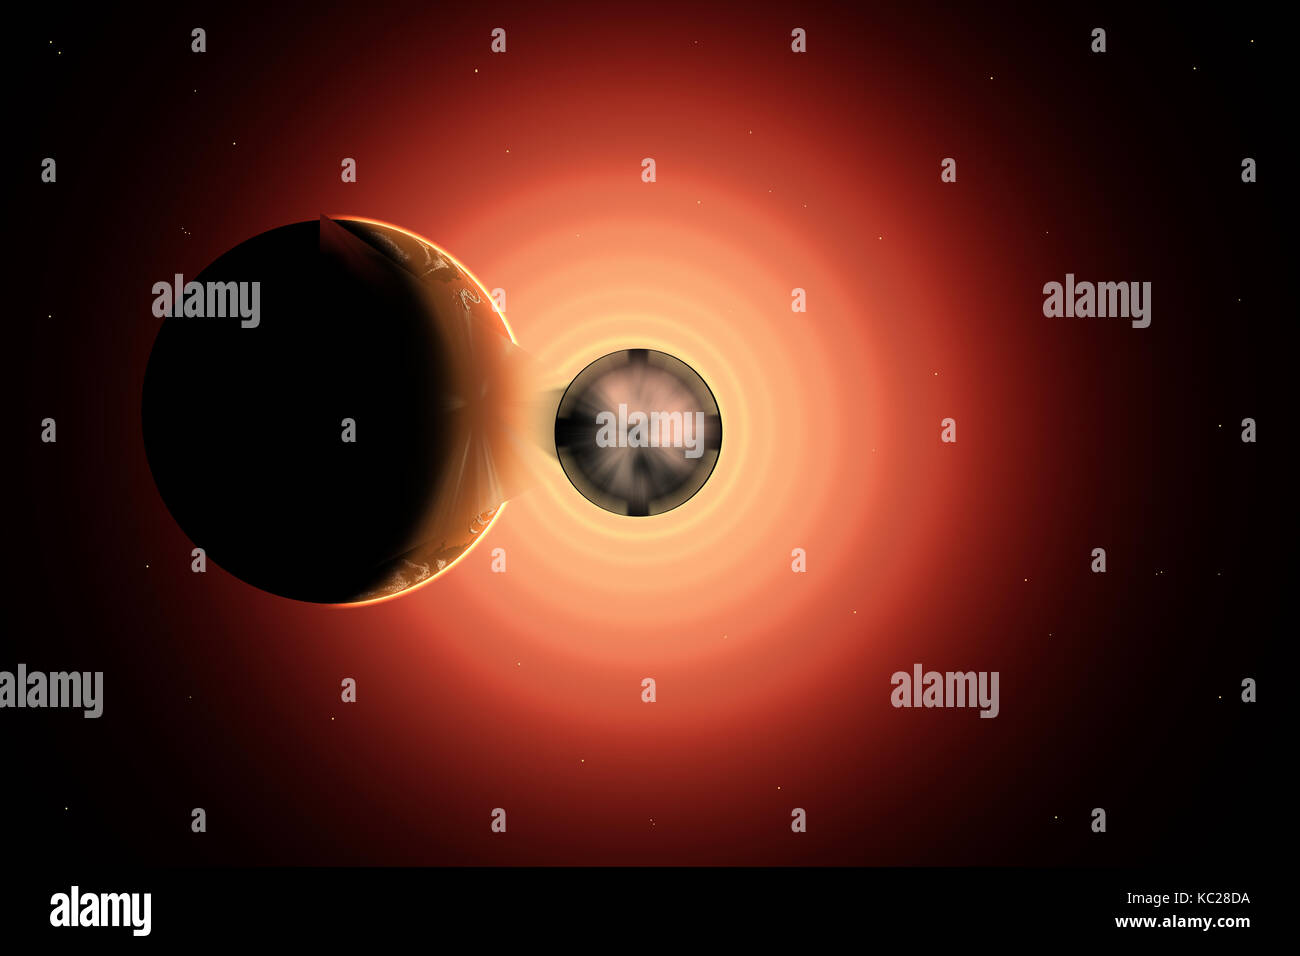 planets being stretched into a black hole - photo #37